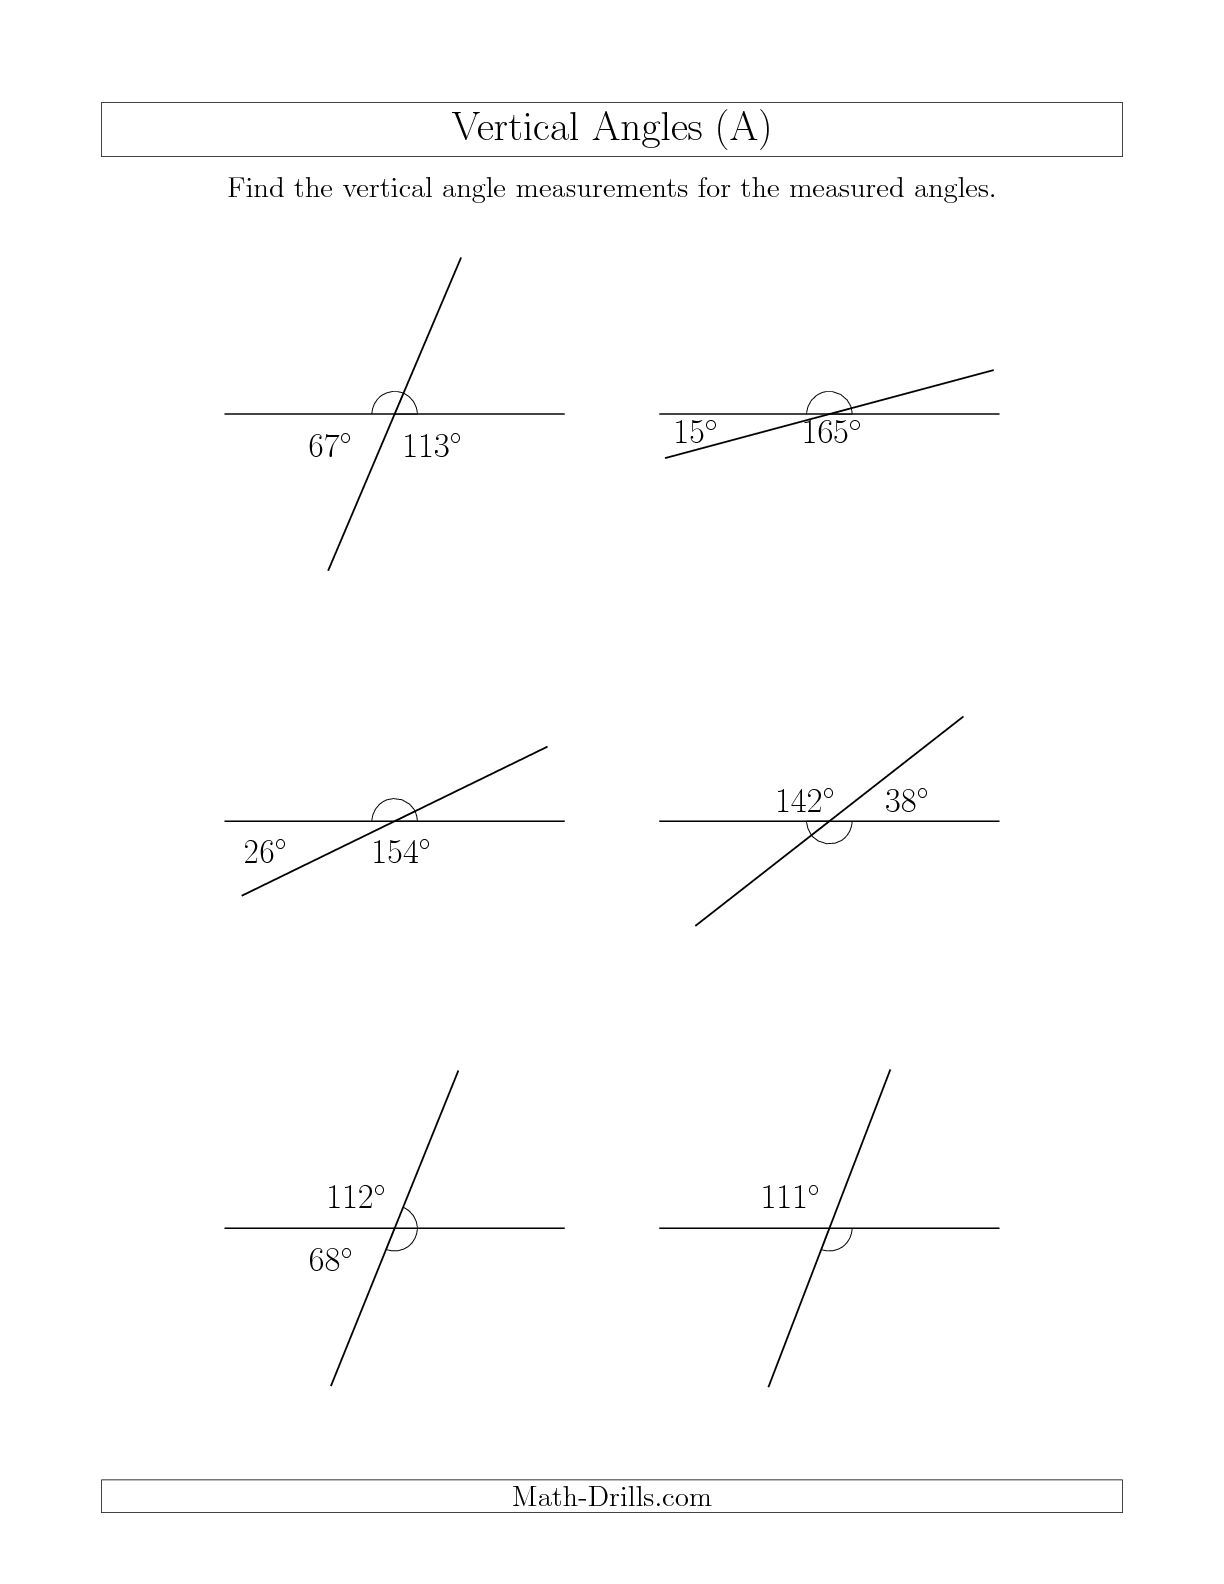 medium resolution of The Vertical Angle Relationships (A) math worksheet from the Geometry  Worksheets page at Math-Drills.com.   Angles worksheet